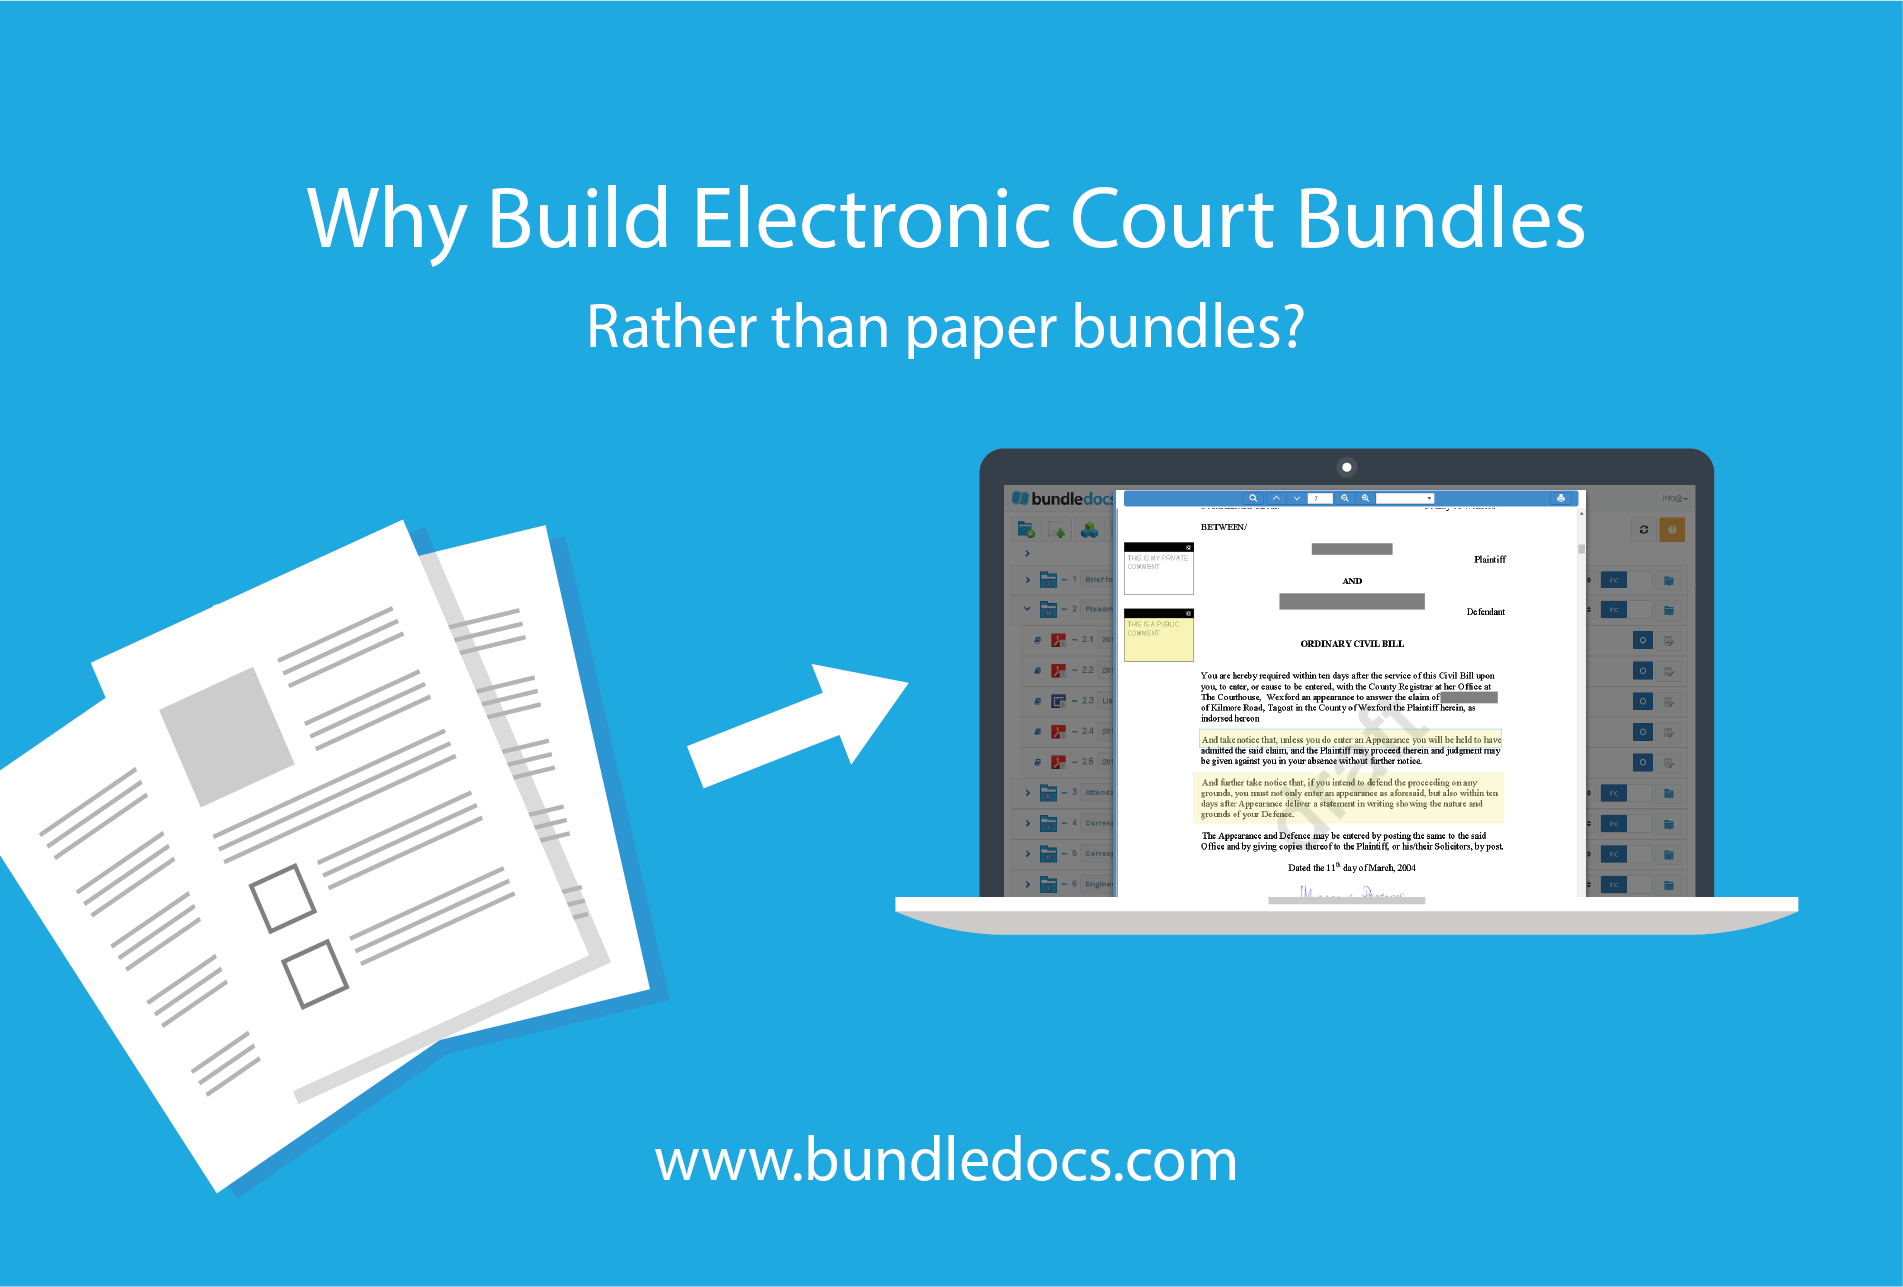 Why_Build_Electronic_Court_Bundles_Rather_Than_Core_Paper_Bundles.png